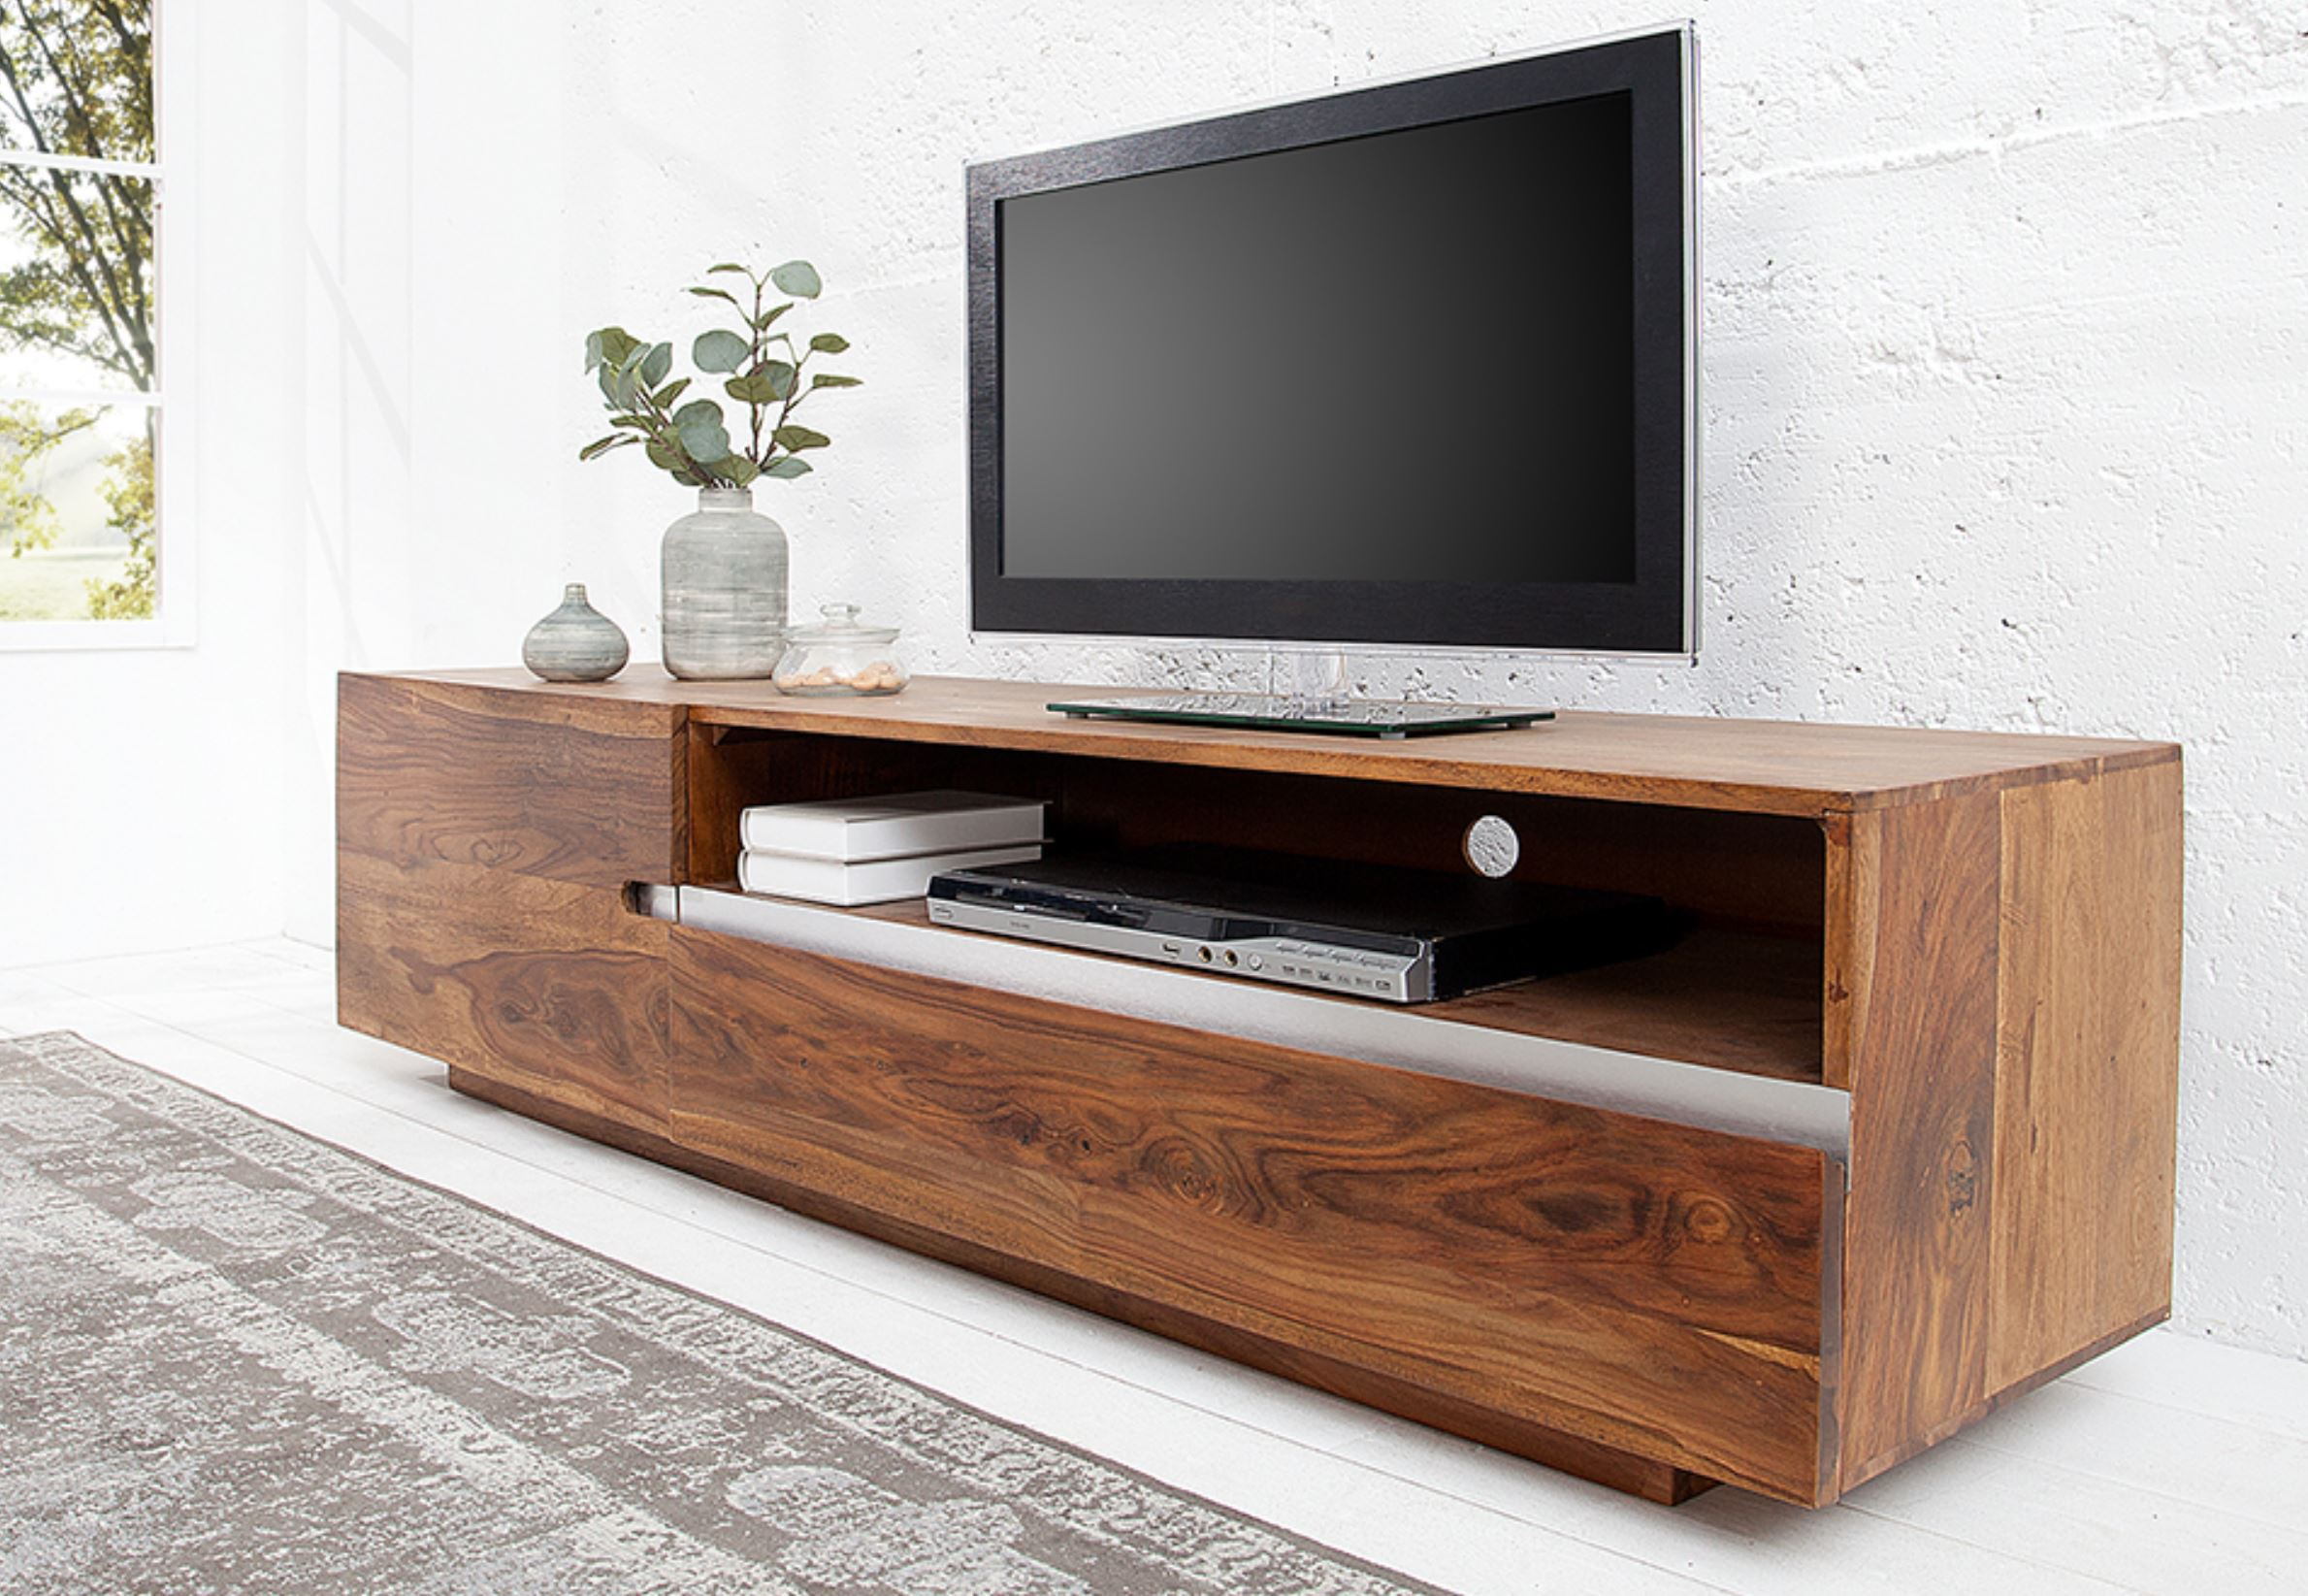 Meuble tv en bois design id es de d coration int rieure french decor - Meuble en bois ...